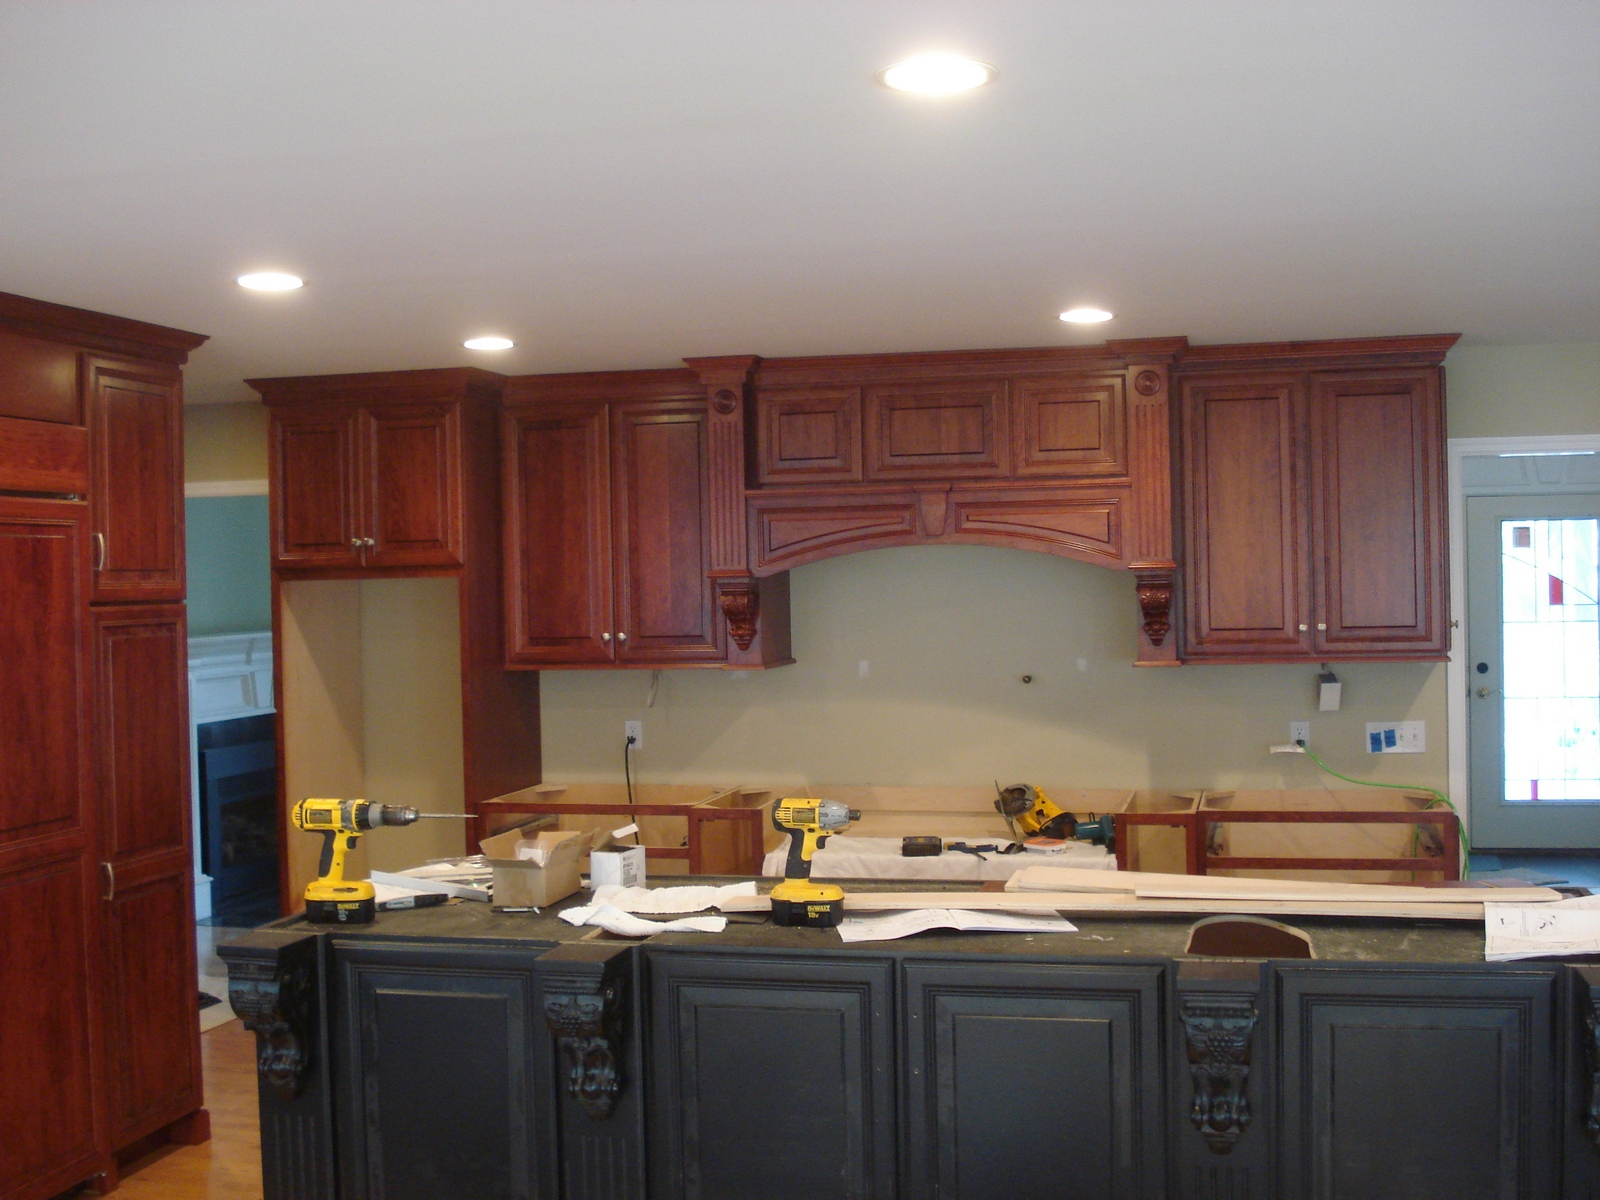 Installing Kitchen Cabinet Crown Molding Kitchen Cabintes By Crown Molding Nj 17 Crown Molding